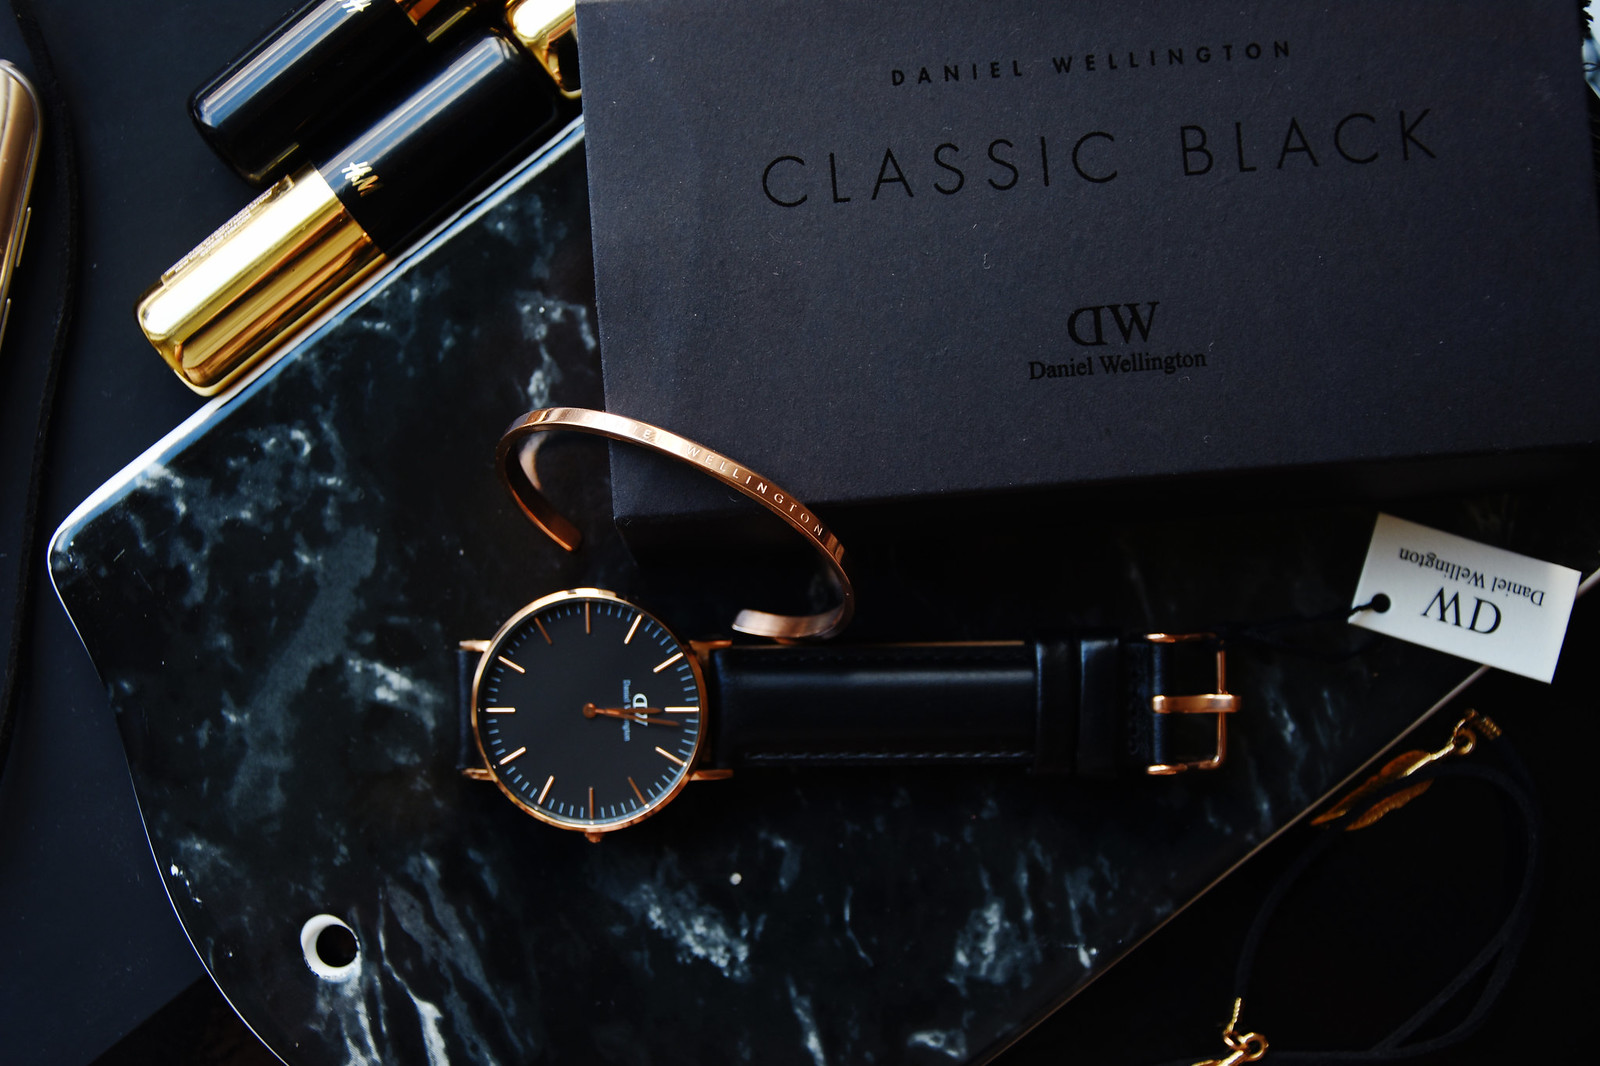 Daniel Wellington classic black watch discount code